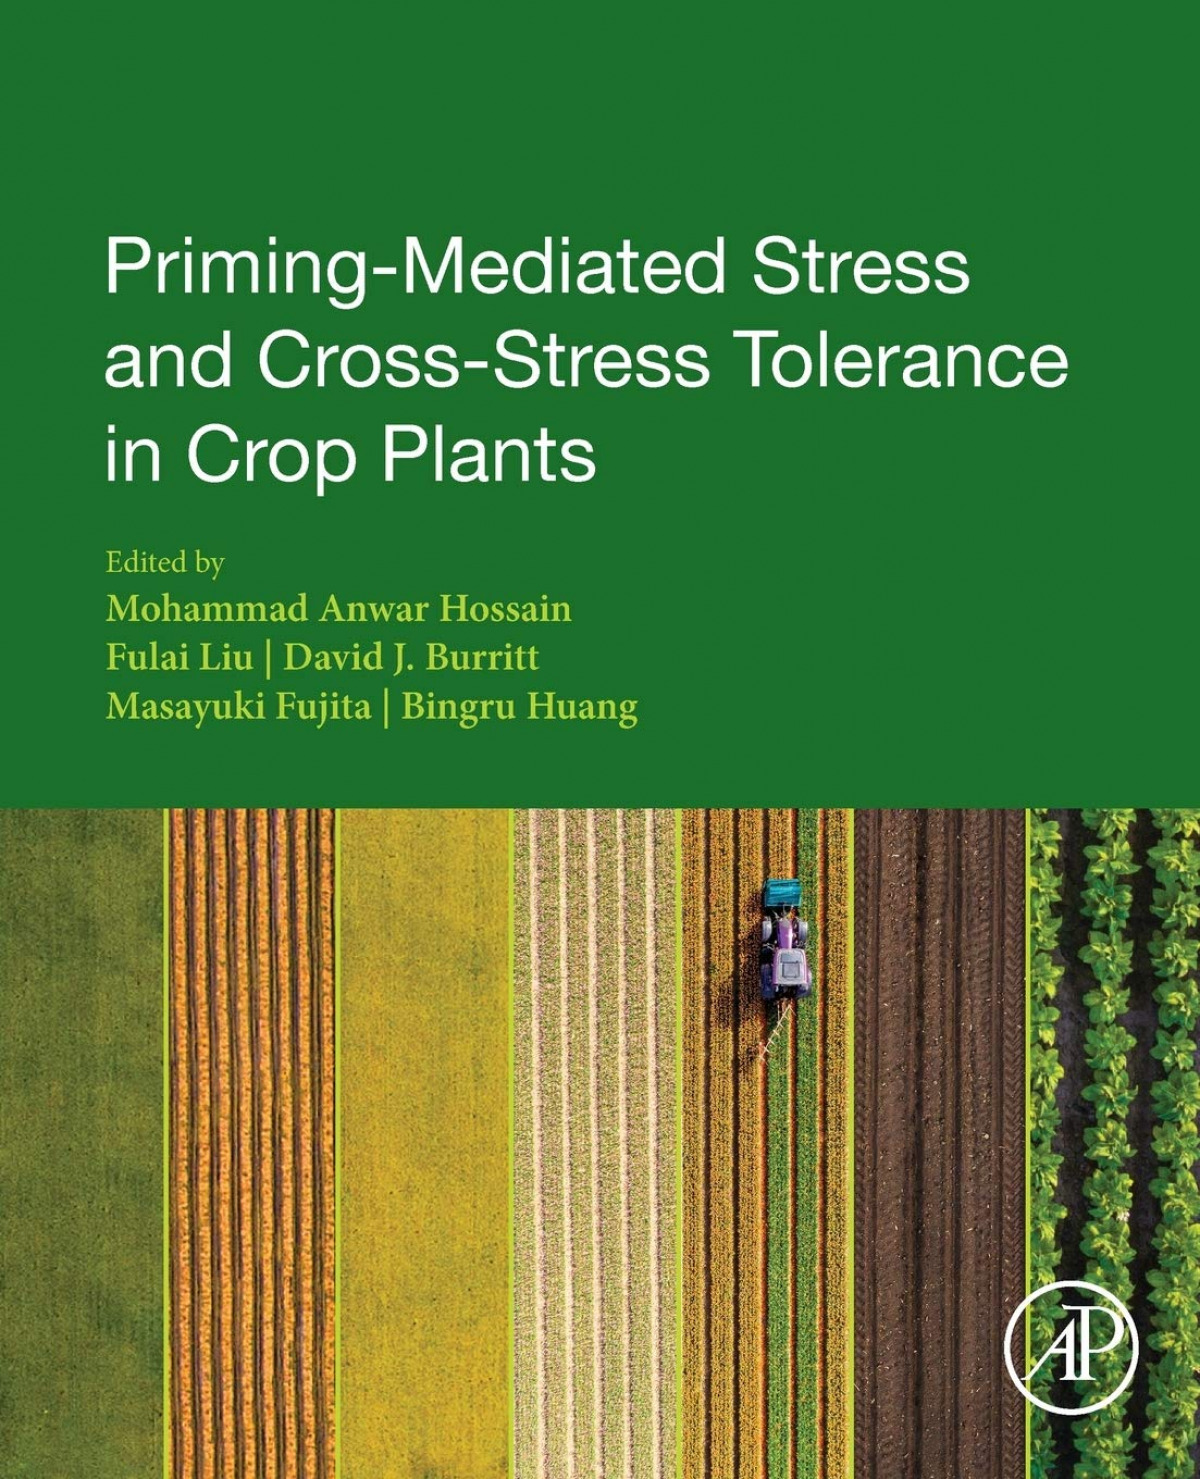 Priming-mediated stress and cross-stress tolerance crop pla